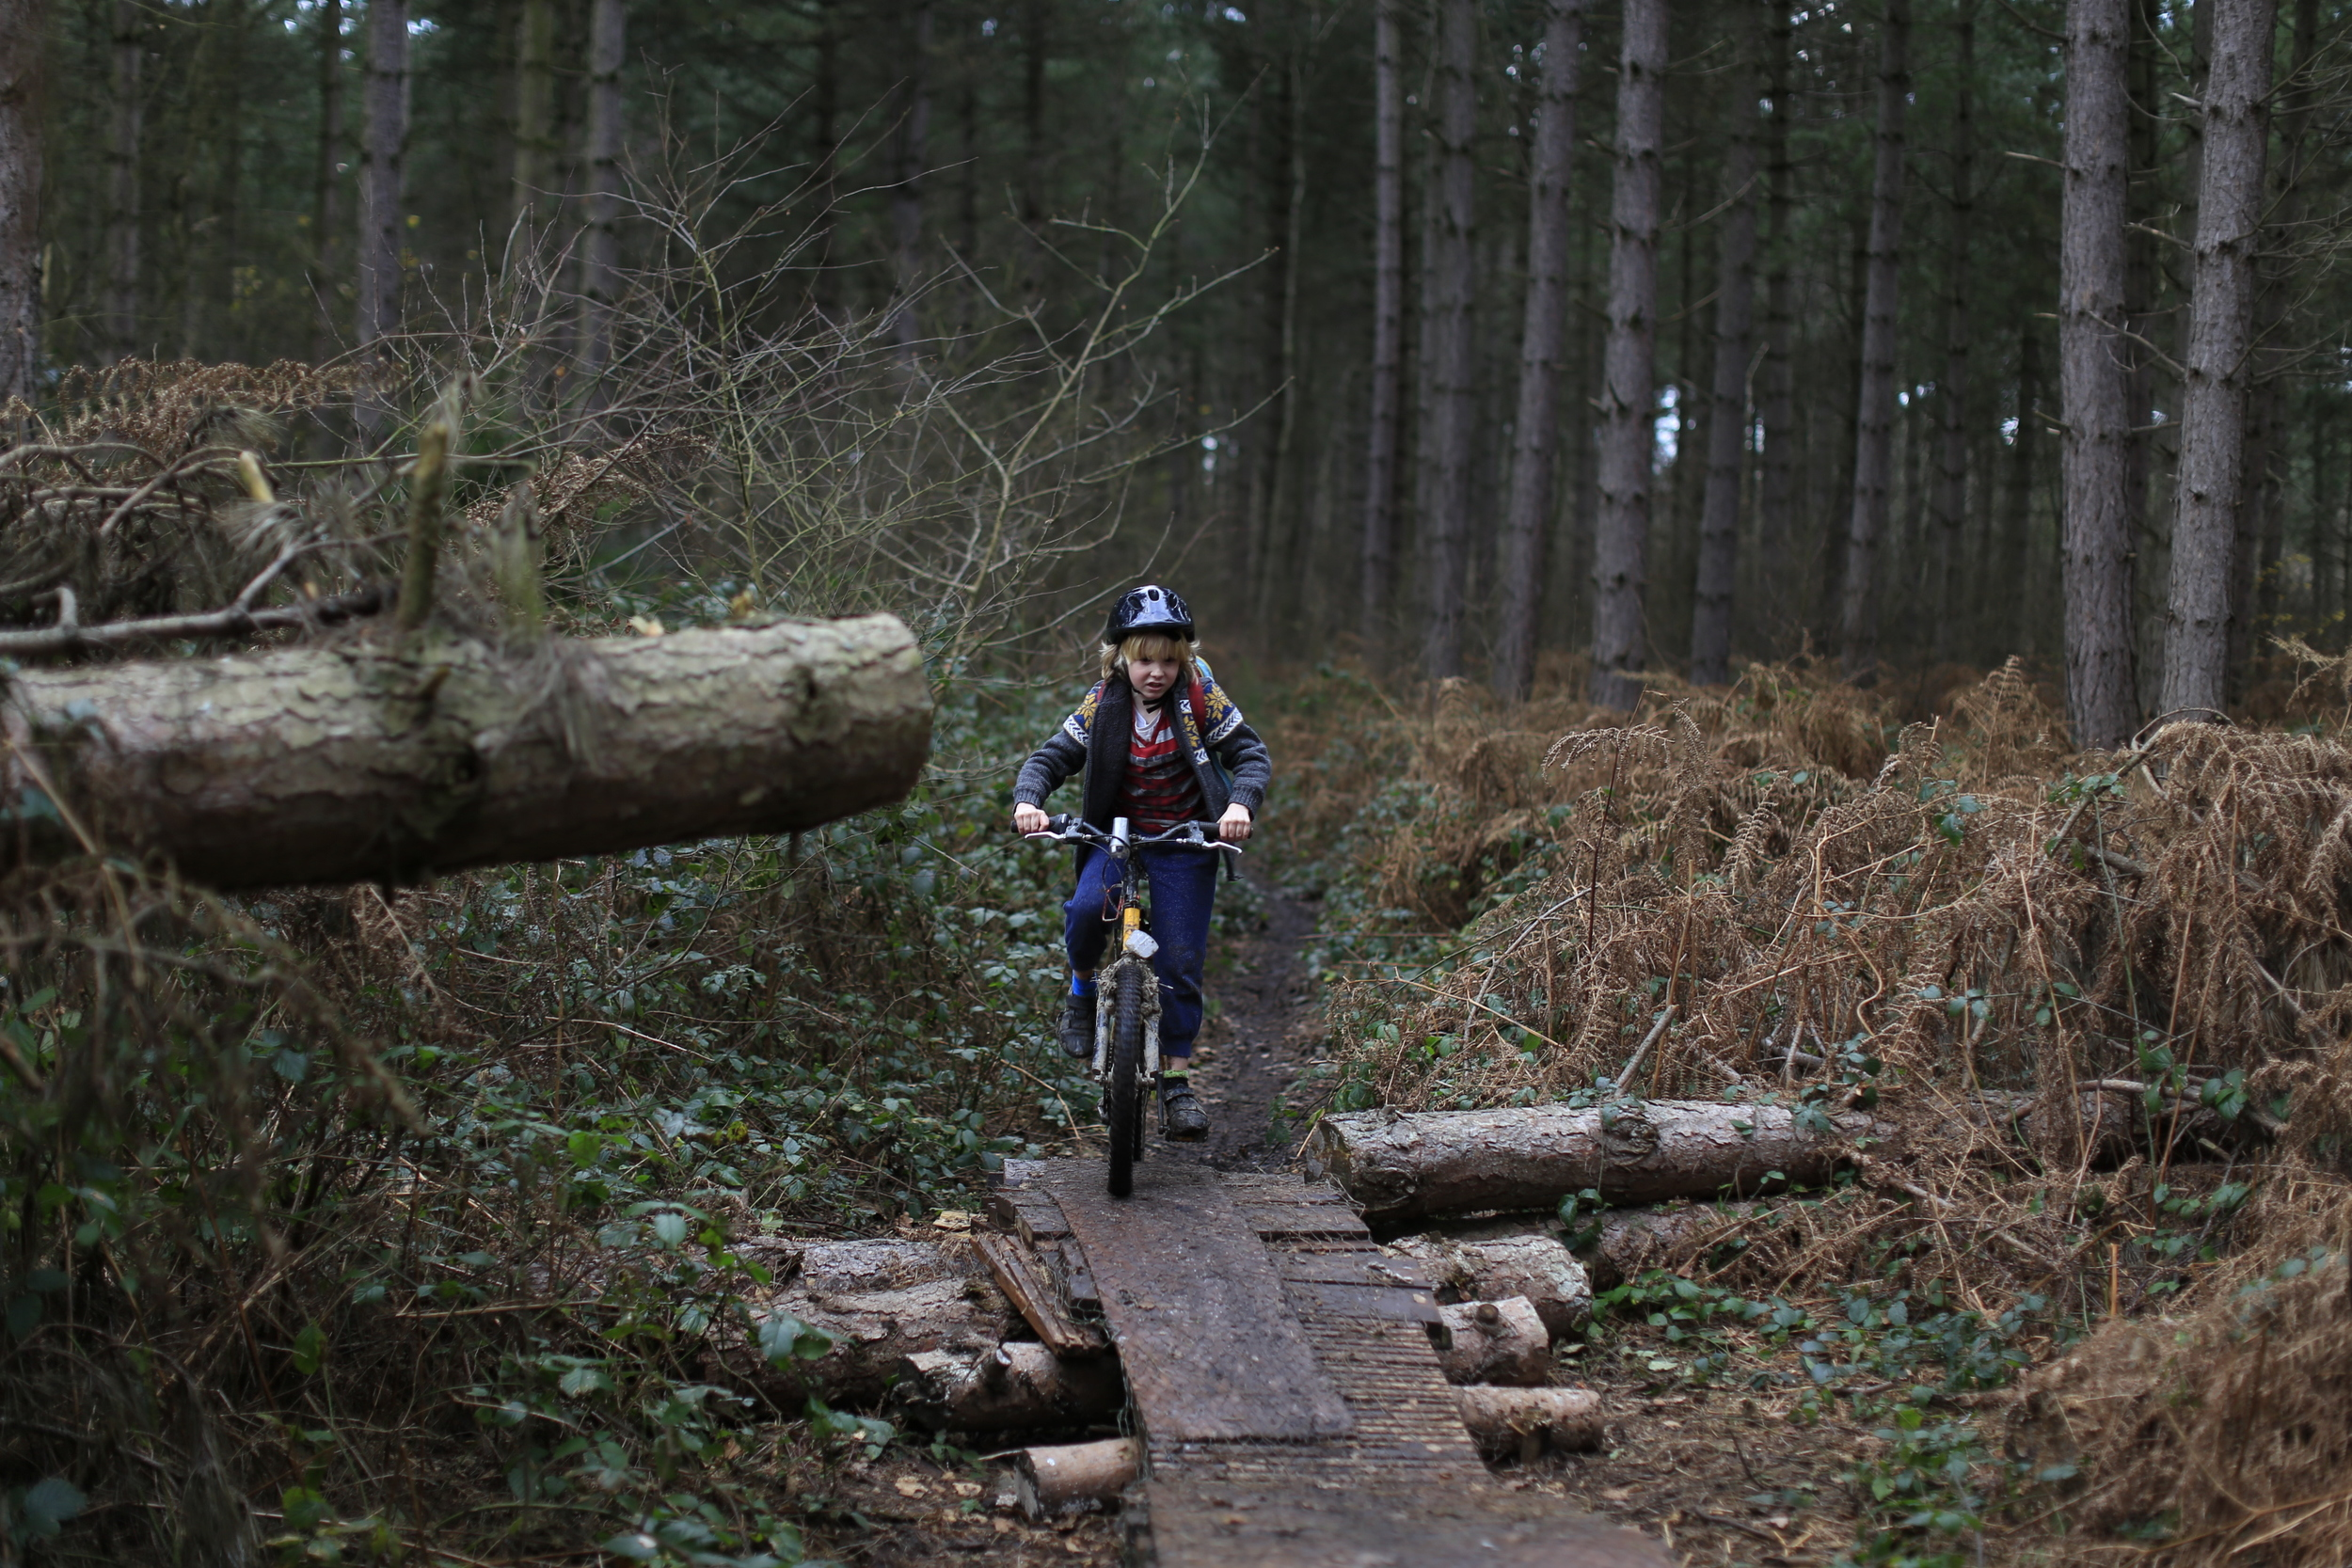 singletrack, woods, ramps, mountain biking, mtb, maxxis, woods, nature, photography, review, blog